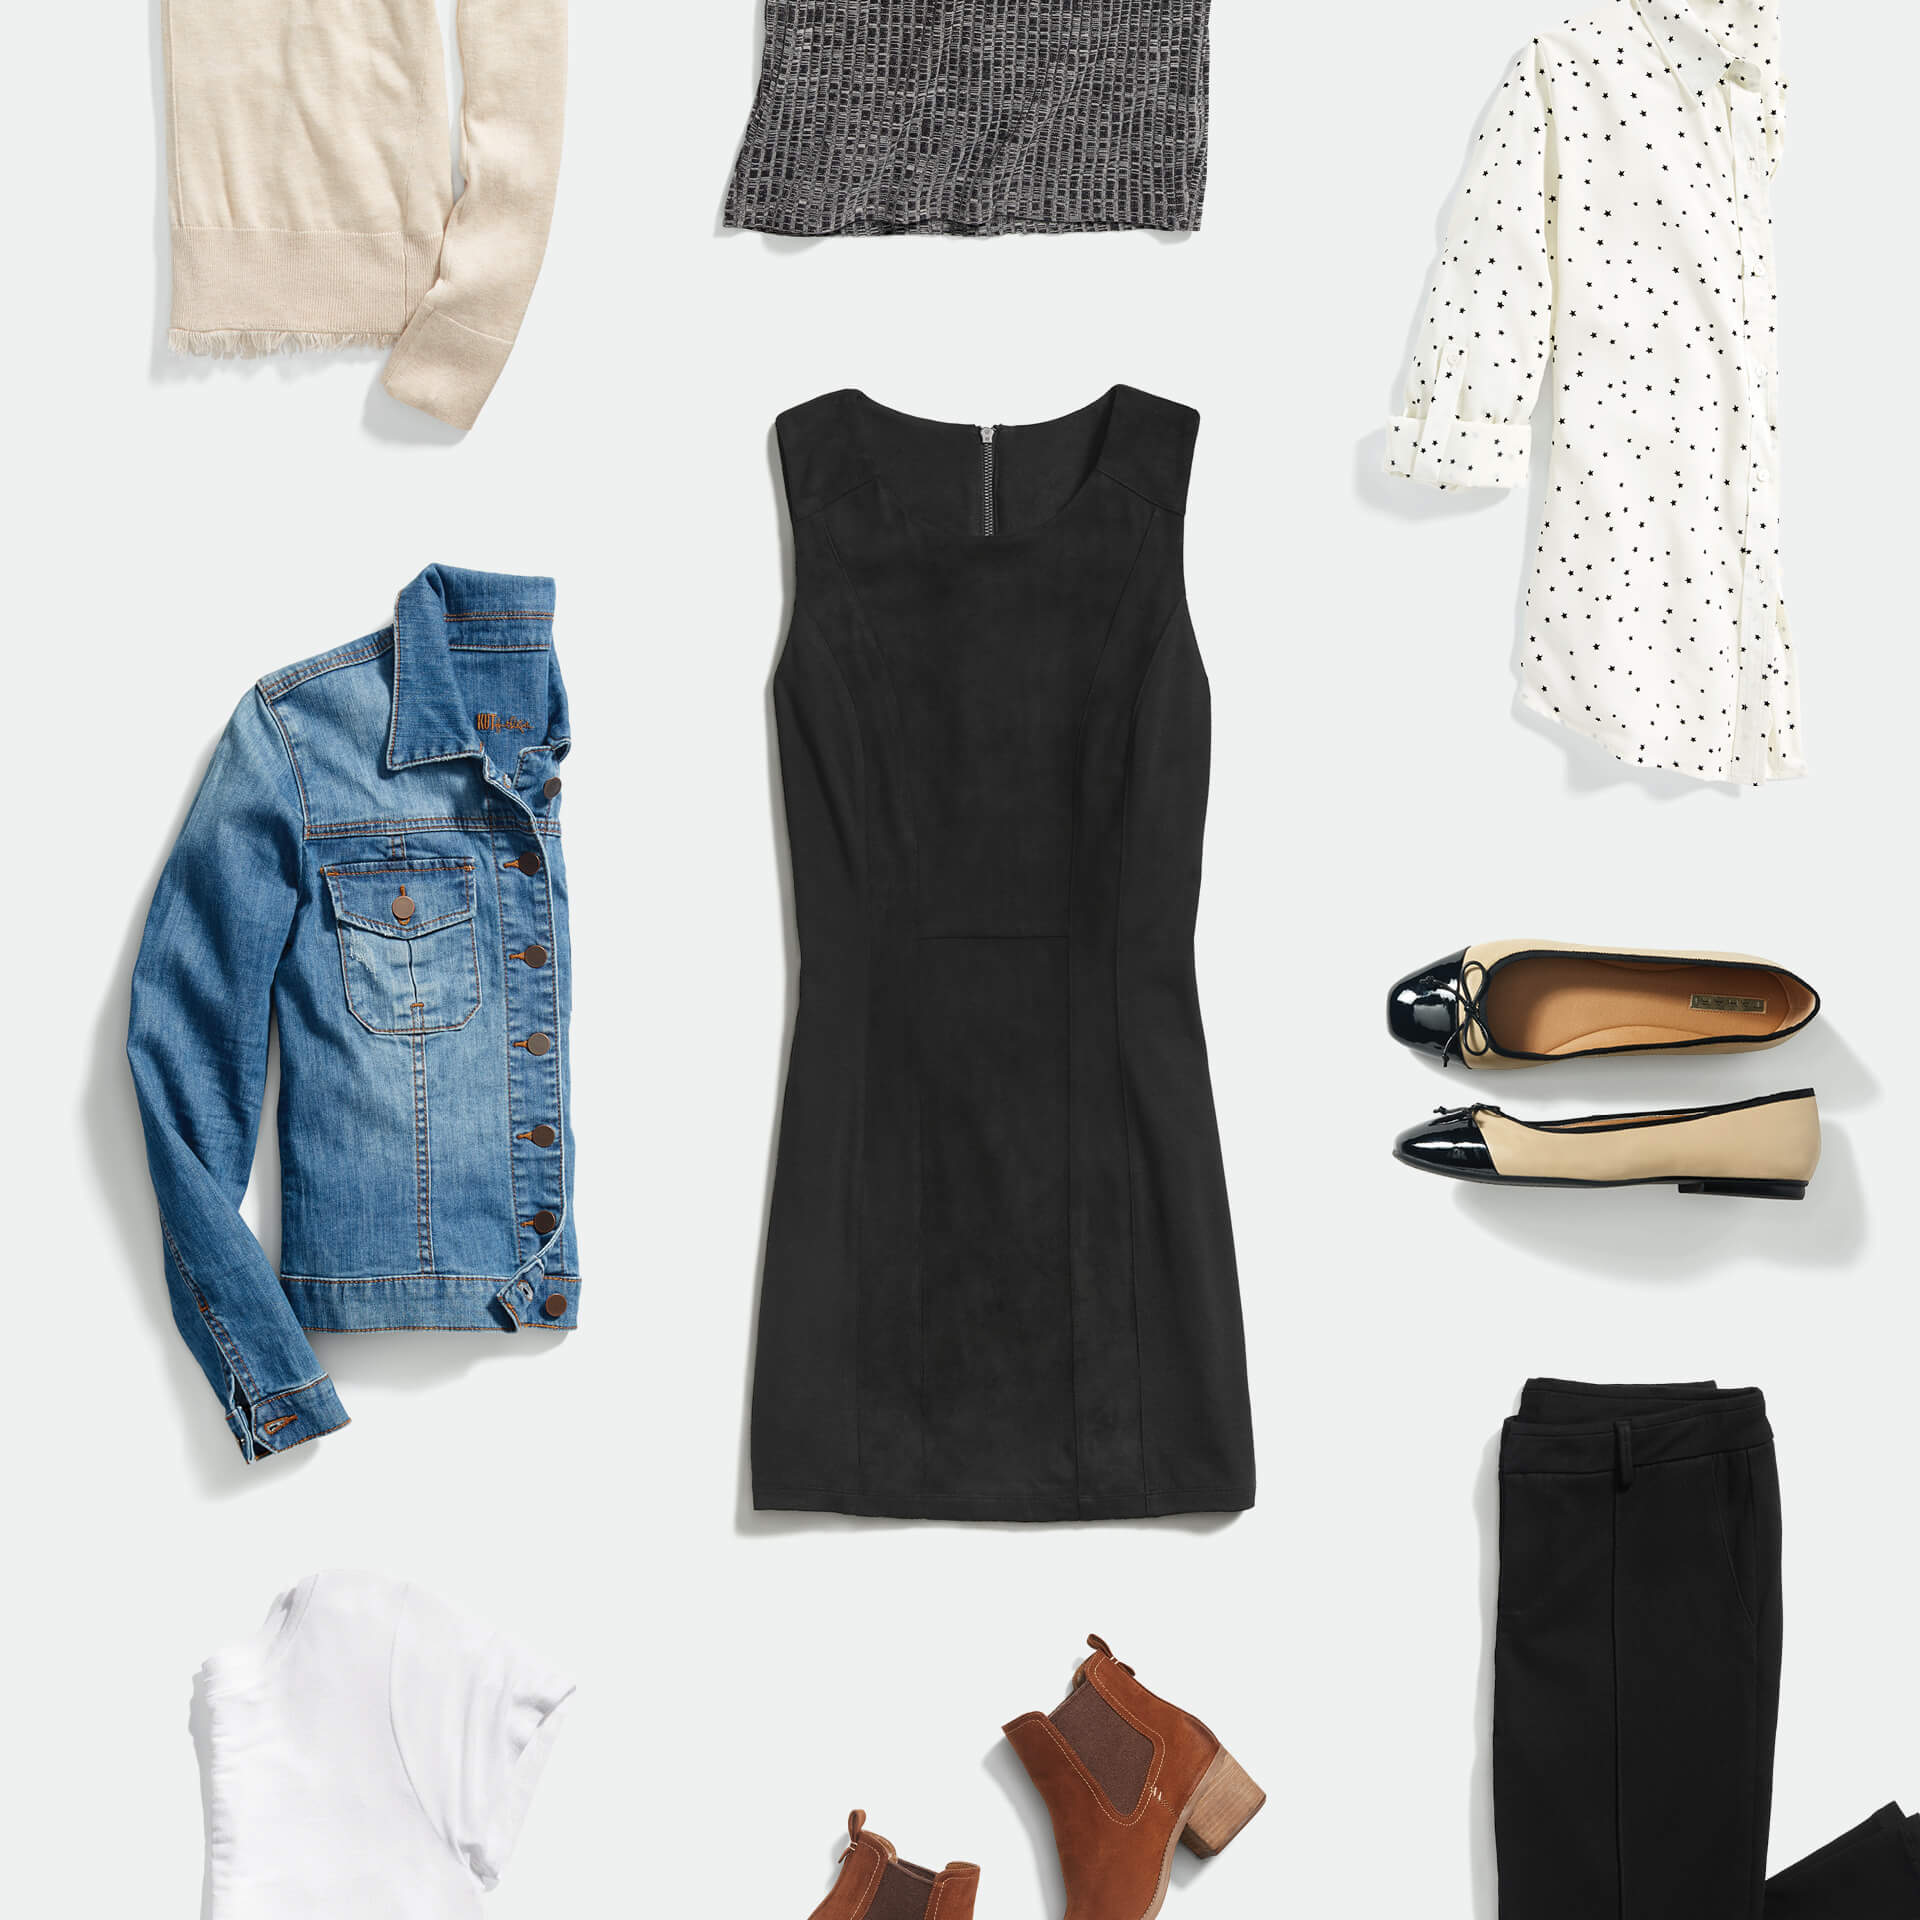 12 Wardrobe Essentials for Your Lifestyle 8b99e9b3c97